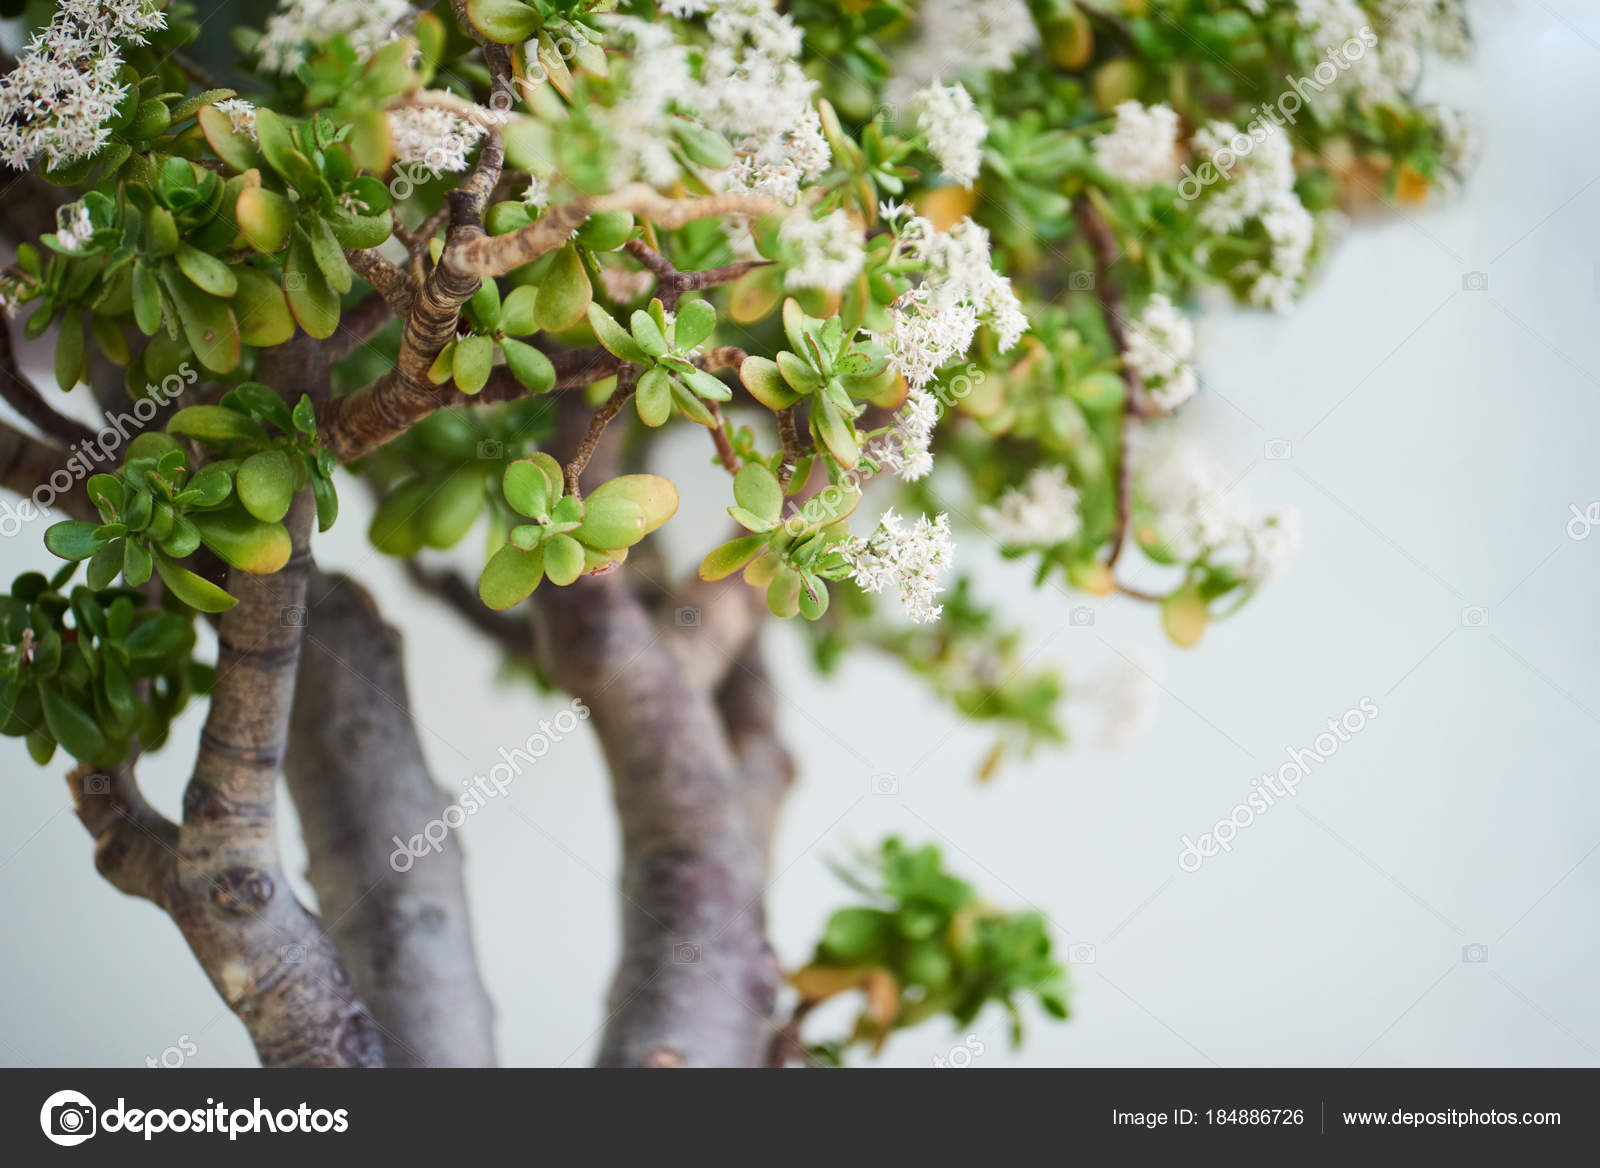 Closeup Little Blossoming Tree Green Leaves White Flowers Stock Photo C Agavestudio 184886726